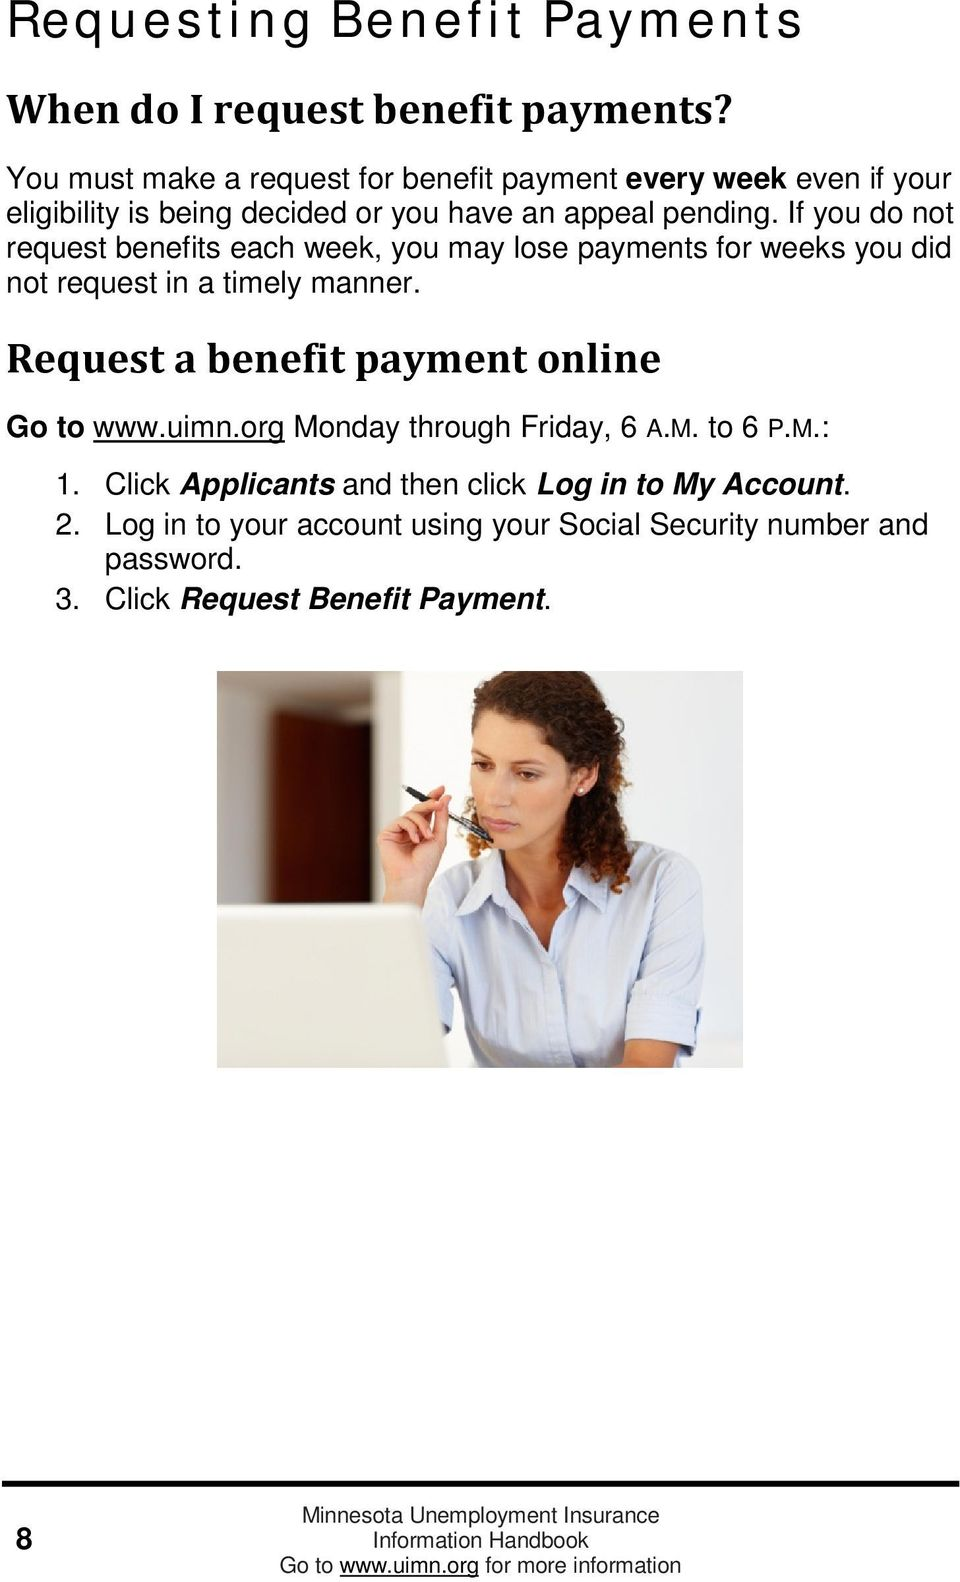 If you do not request benefits each week, you may lose payments for weeks you did not request in a timely manner.